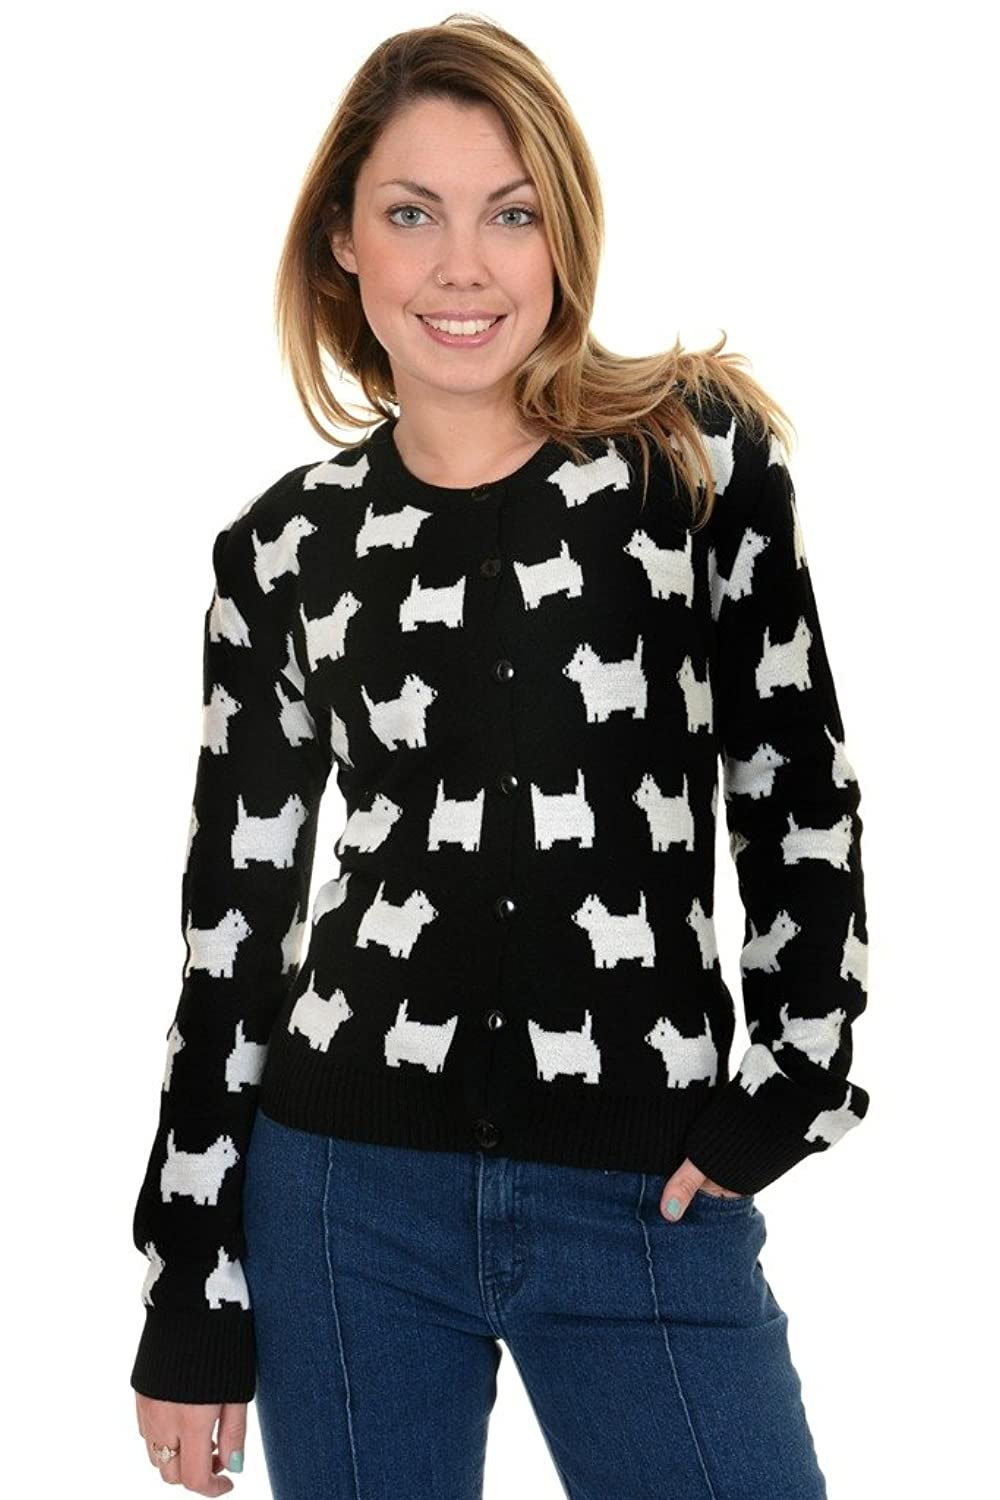 1950s Style Sweaters, Crop Cardigans, Twin Sets  50s 60s Retro New Vintage Scottie Dog Cardigan $34.95 AT vintagedancer.com